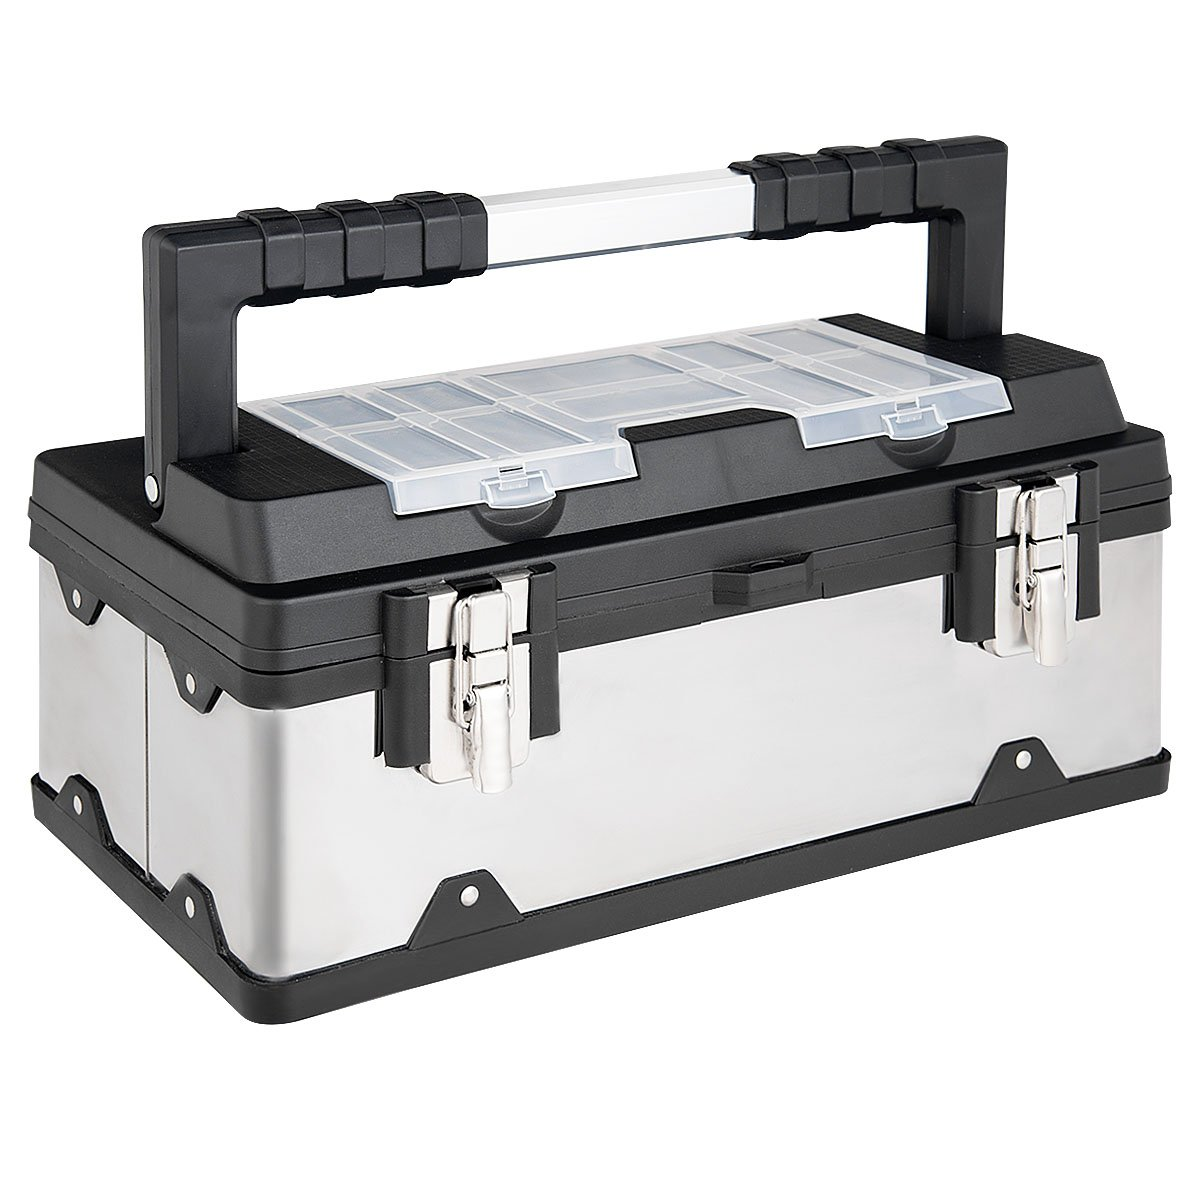 Goplus Portable Tool Box 19In Toolbox Lockable Cabinet Tool Storage Box Stainless Steel Organizer with Multiple Compartments, Handle Essential Tool Kit for Home Garage